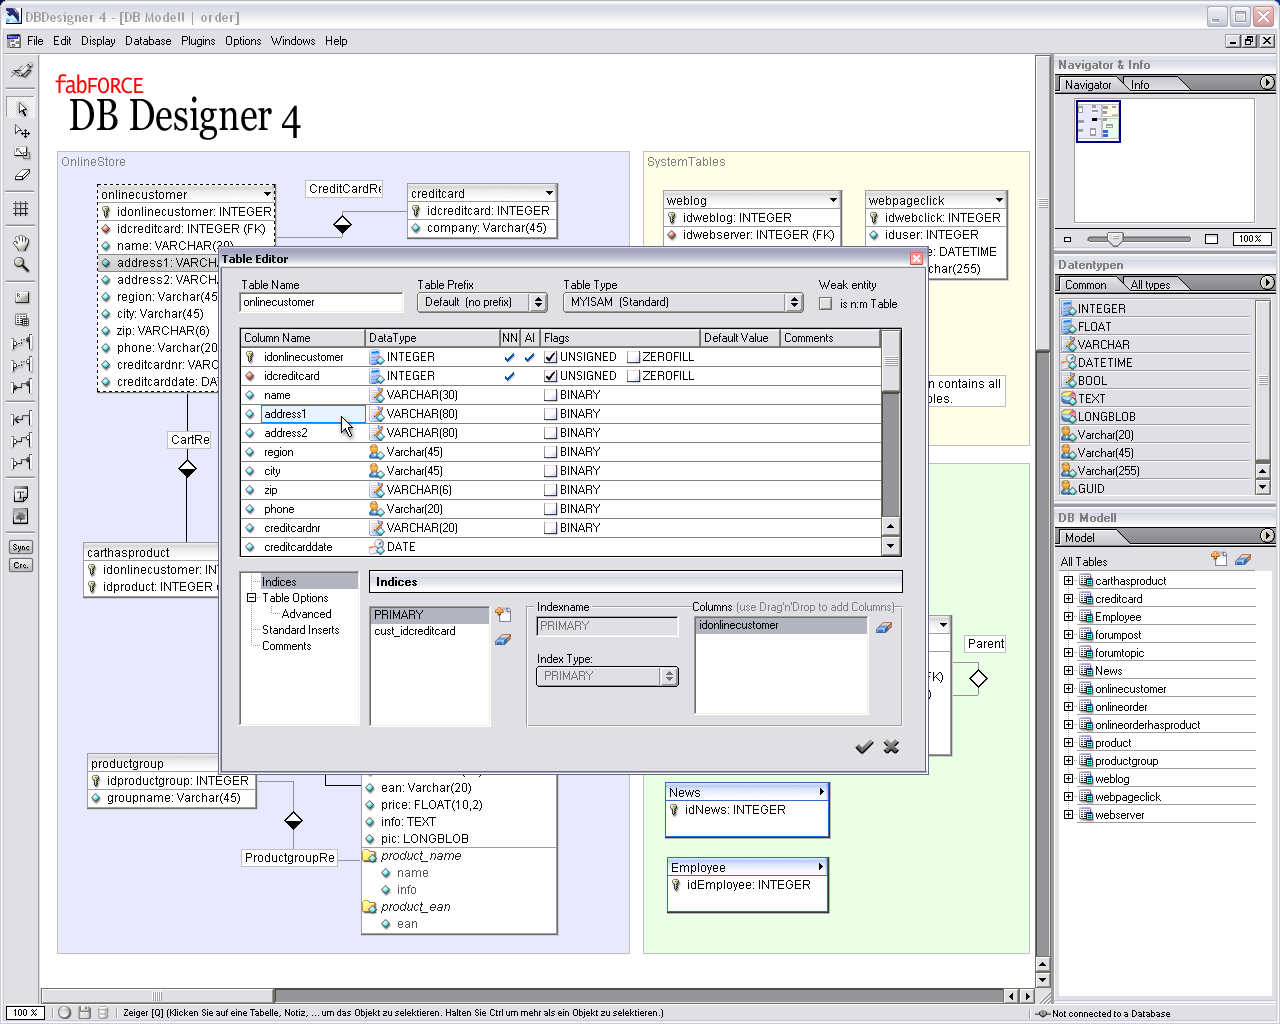 DBDesigner 4 - DBMS Tools on system mapping tools, map tools, process mapping tools, database models, database clip art, database tables, gis mapping tools, communication mapping tools, database support, content mapping tools, database training, project mapping tools, database column vs row, database technology, database hardware, business mapping tools, client mapping tools, database security, database diagram, project management tools,